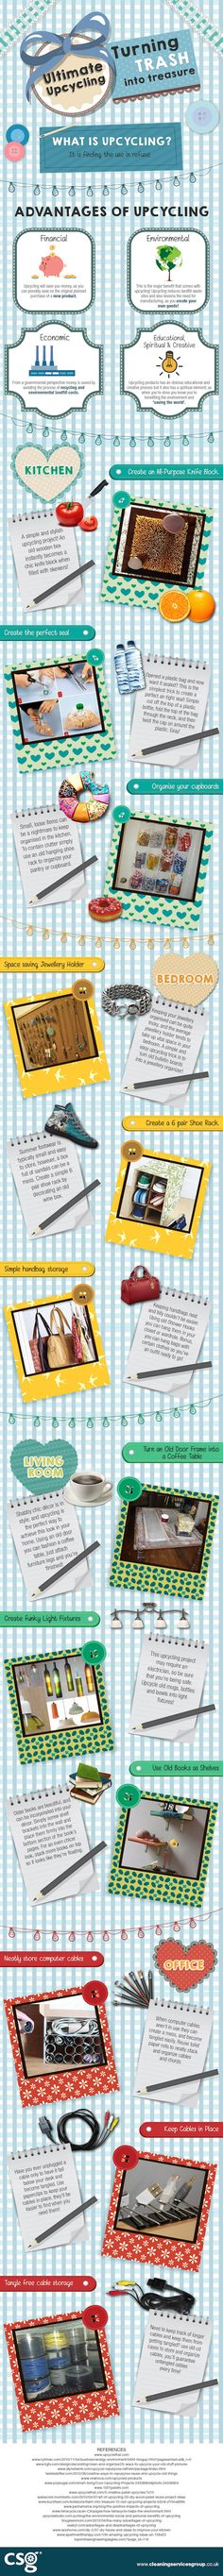 upcycling, infographic, reader submitted content, recycling materials, upcycling projects, diy, cleaning services group